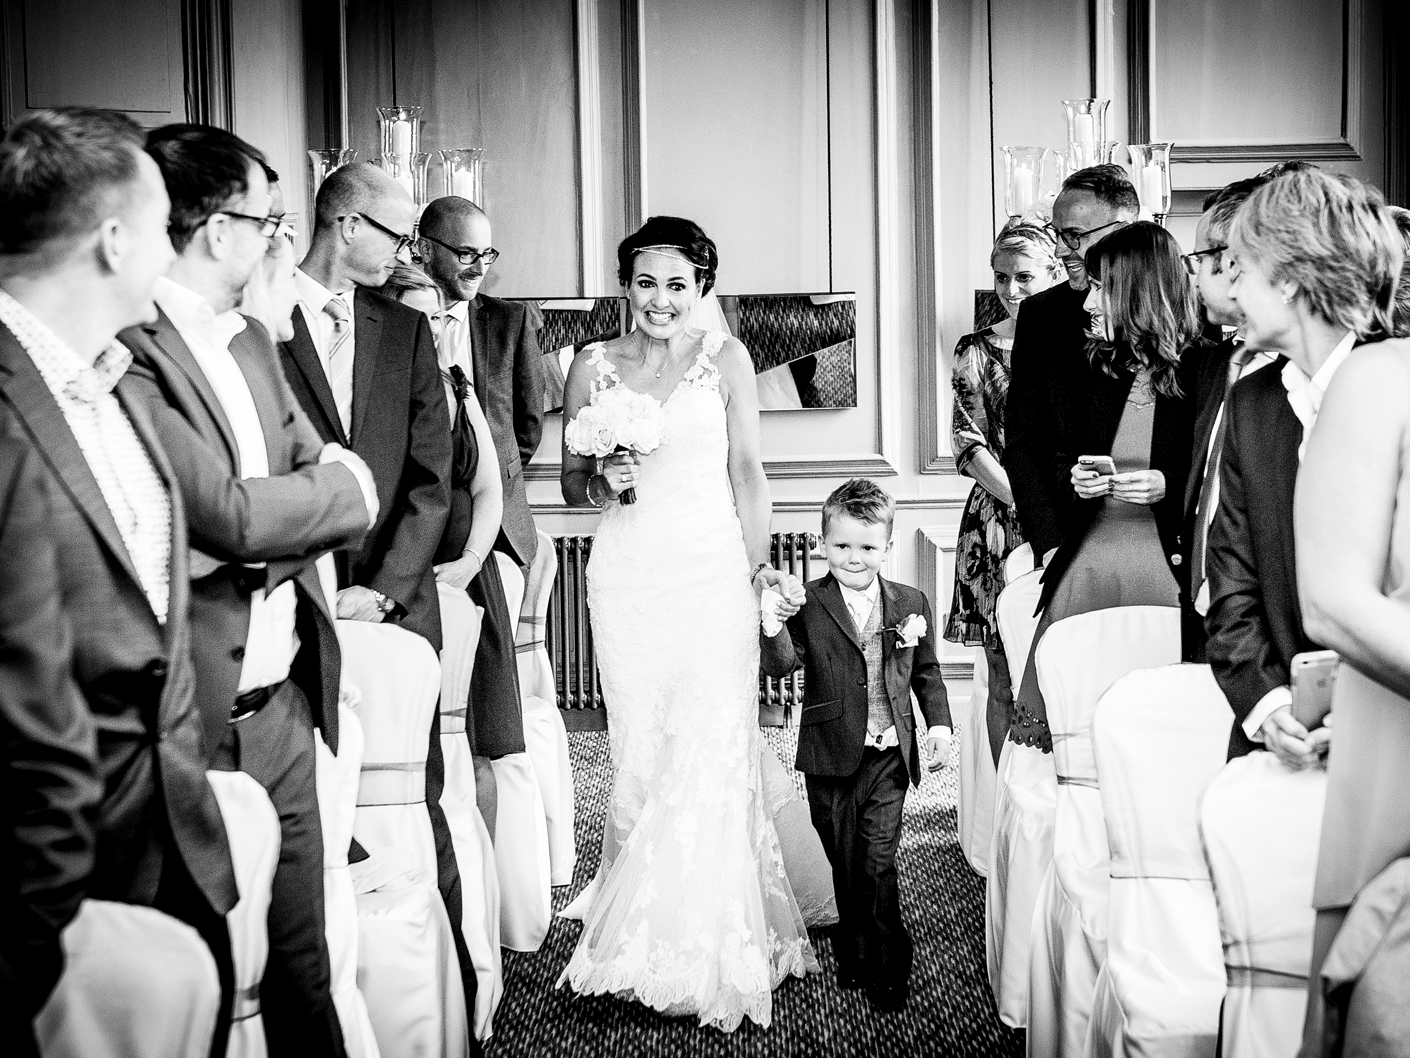 photography-of-the-bride-walking-down-the-aisle-at-the-cheshire-wedding-ceremony